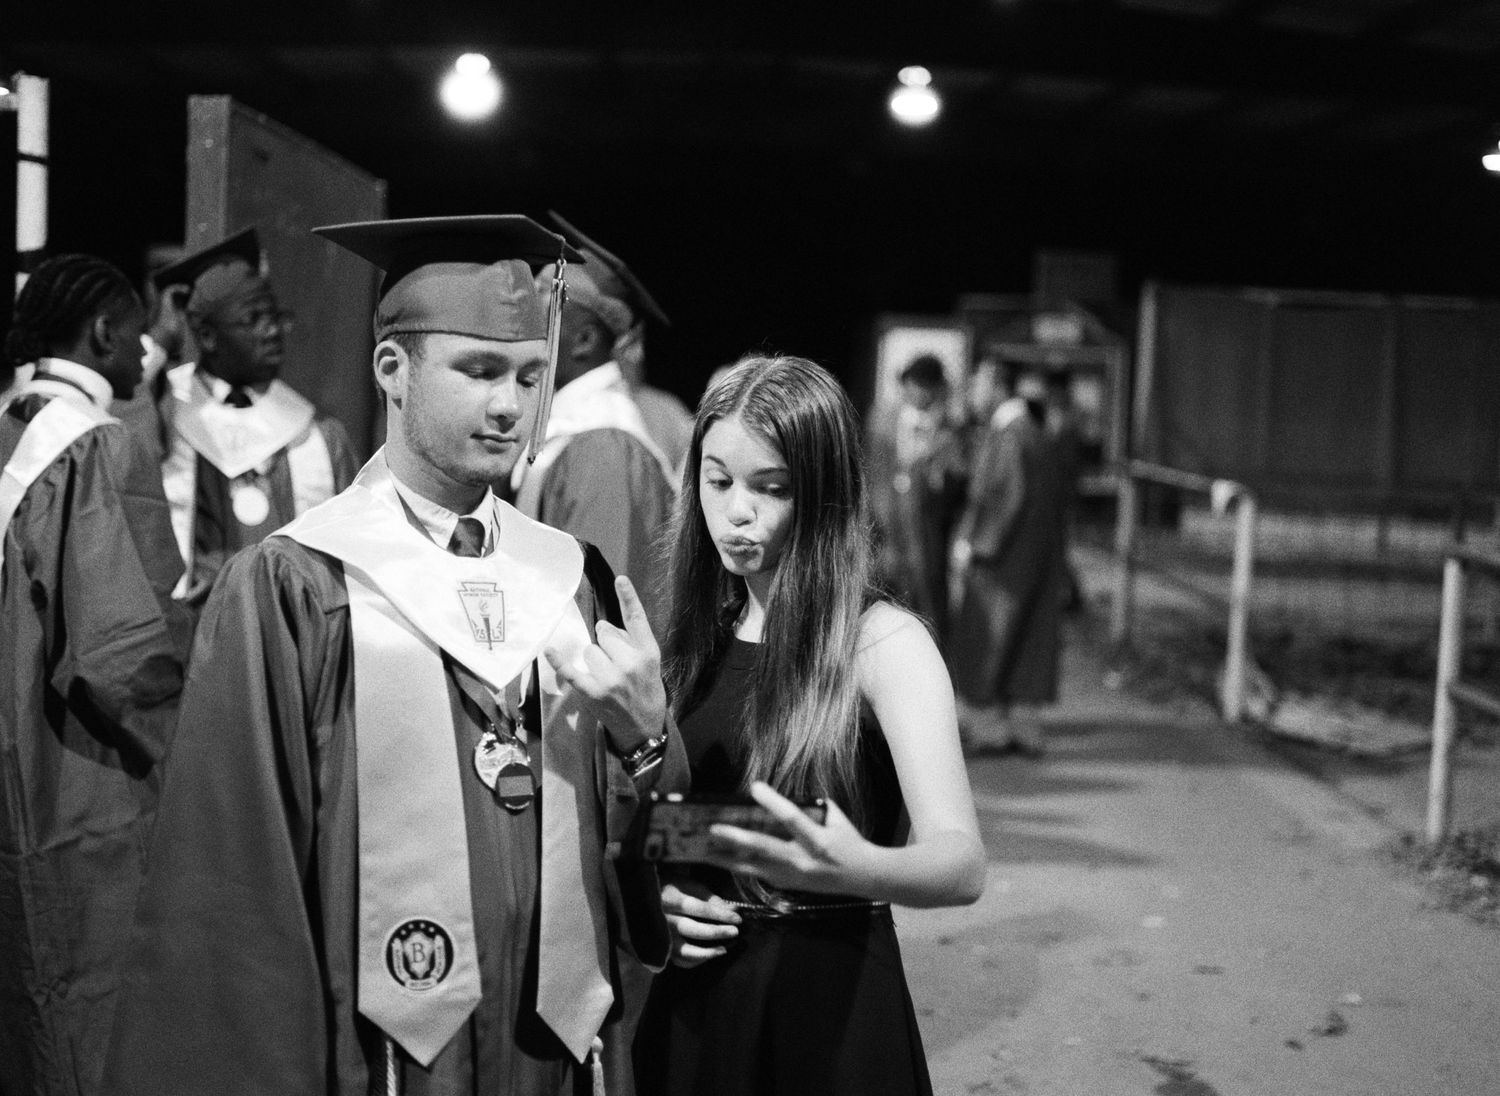 A senior in the class of 2020 at Franklinton High School and his sister after his graduation.